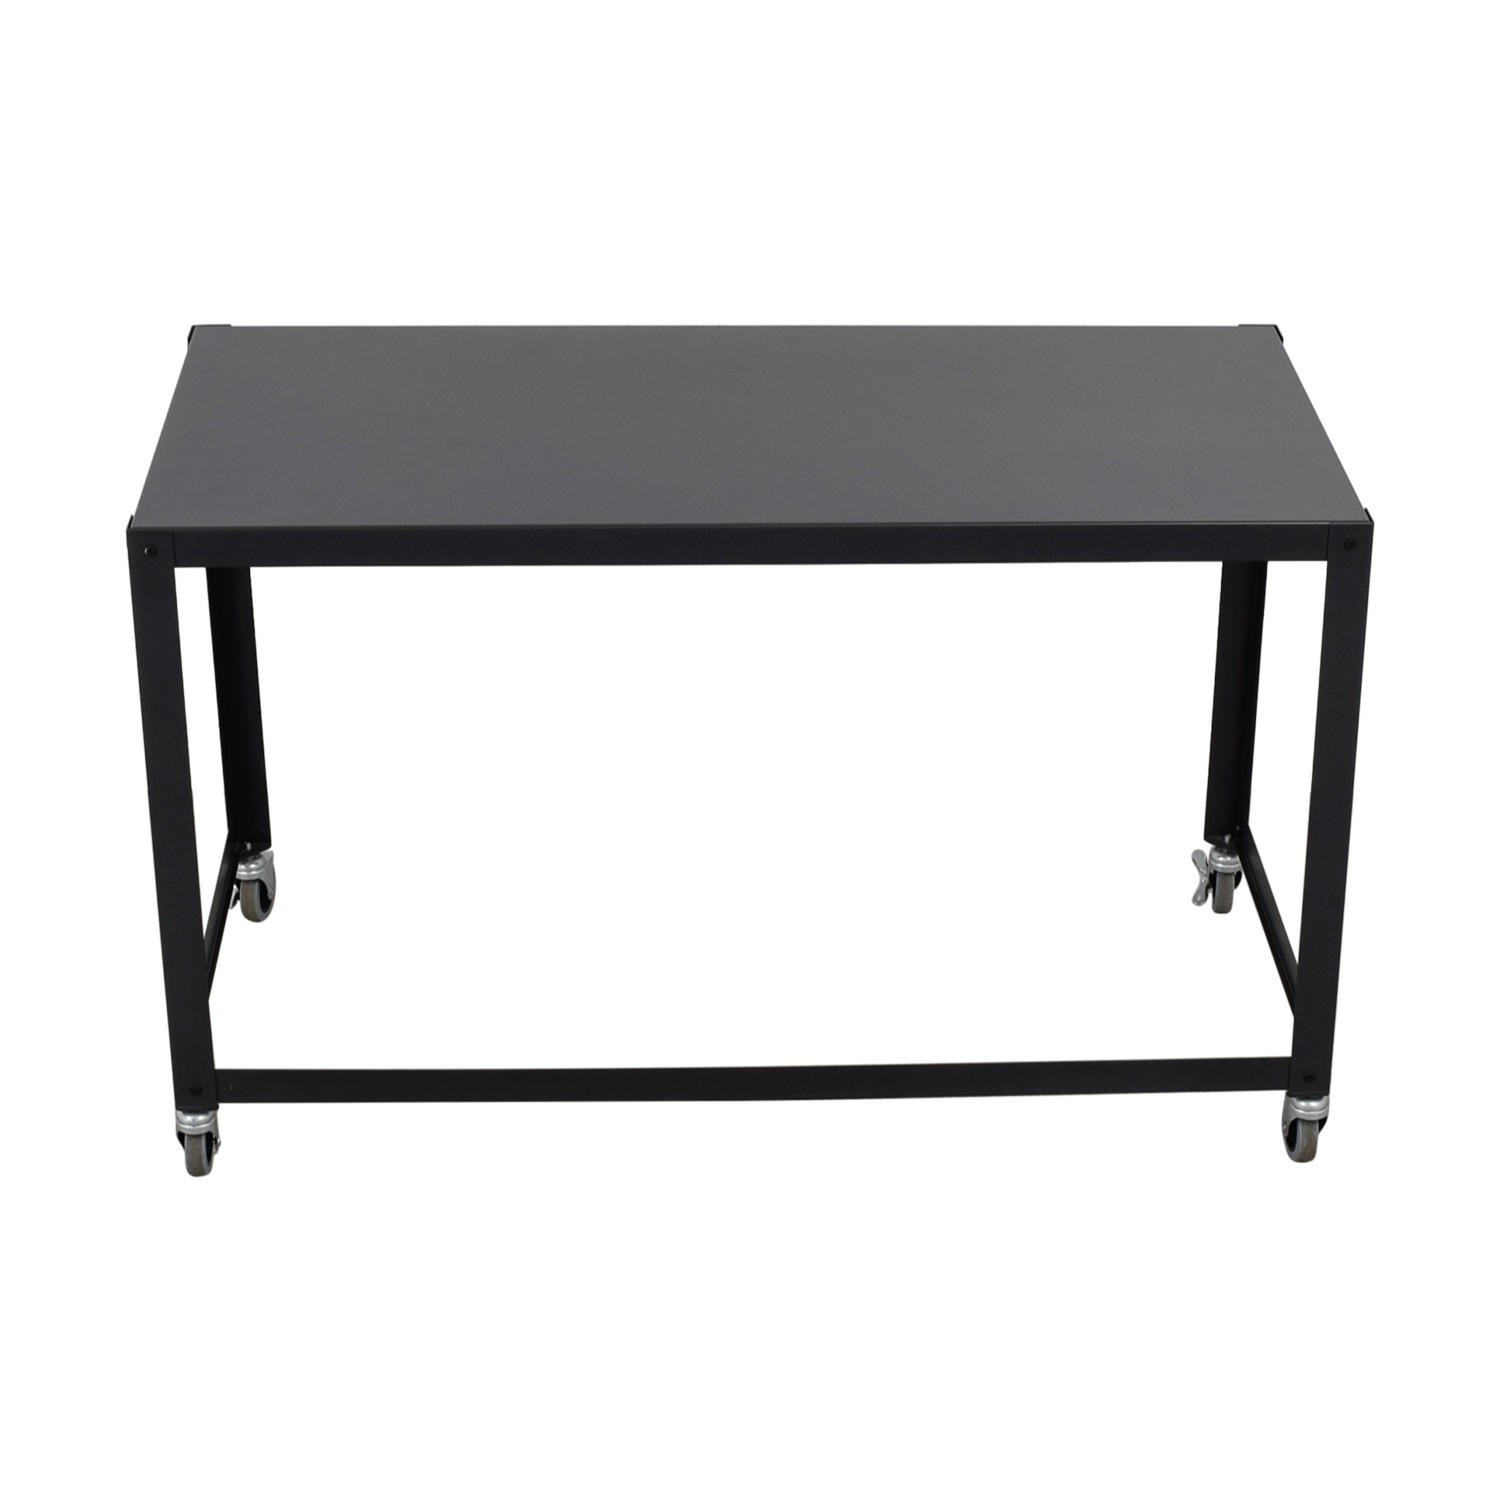 44% OFF   CB2 CB2 Go Cart Rolling Desk / Tables